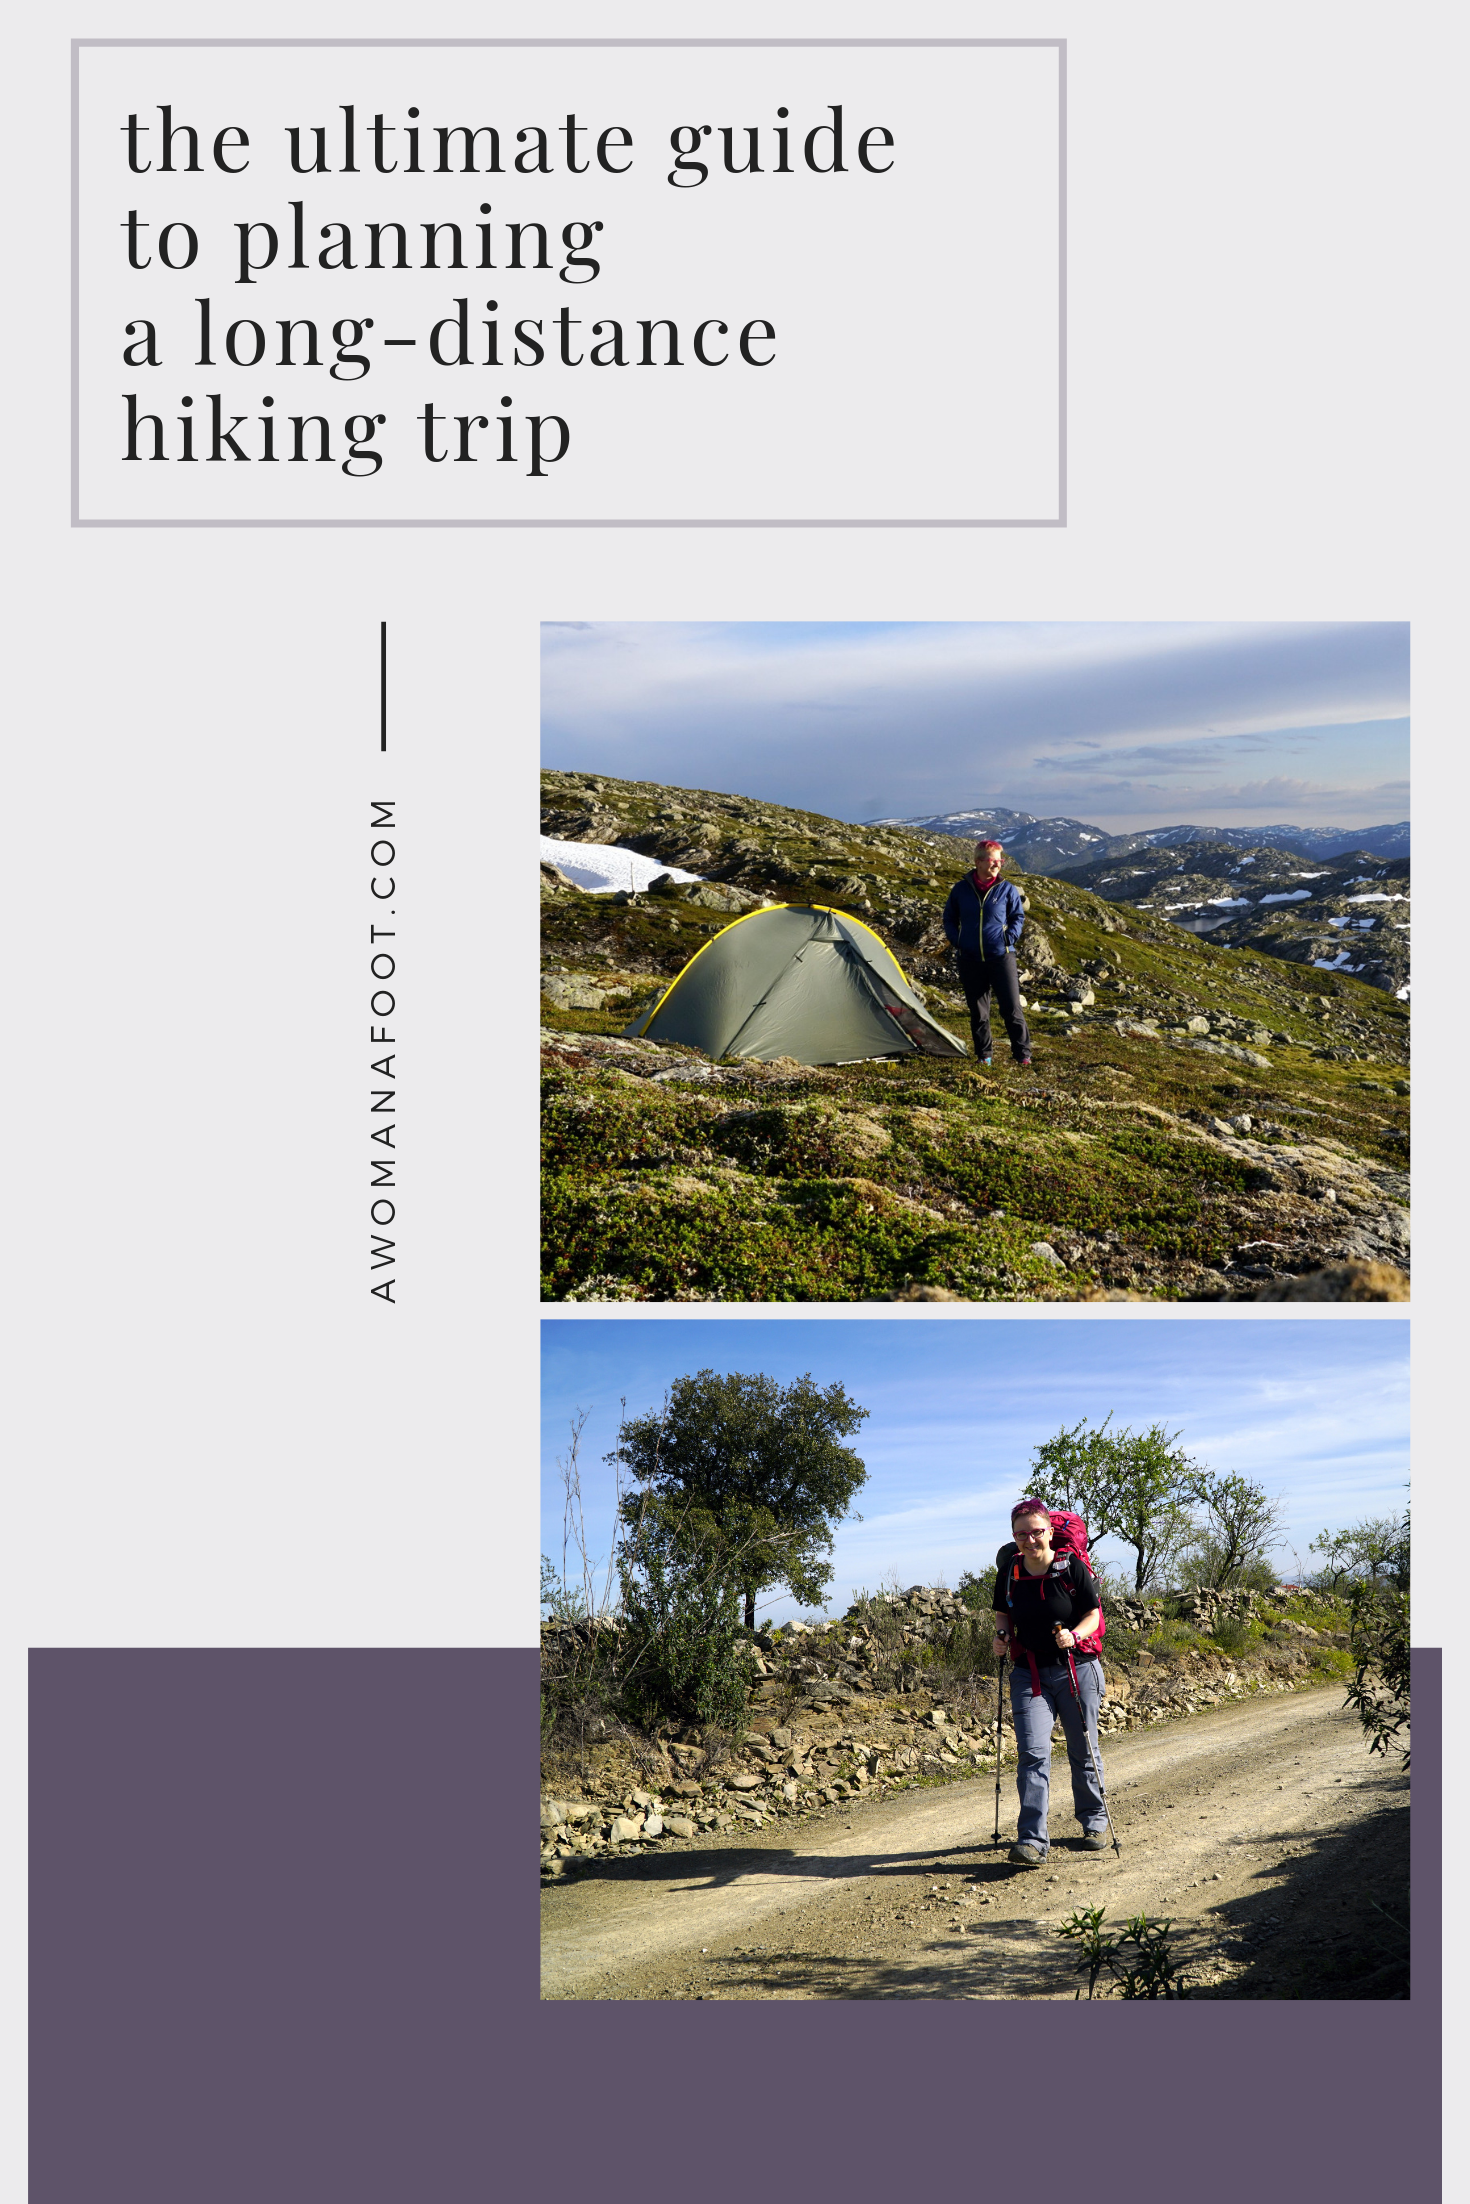 If you want to enjoy a fun and safe hiking trip, you have to prepare. Read this Guide to learn all you need to consider to prepare for a long backpacking adventure @ AWOMANAFOOT.COM. | How to plan a hiking trip | Planning a backpacking adventure | Trekking plan | Hiking & camping advice | Tips for hikers & campers | Trekking advice | #Hiking #Camping #Backpacking #Adventure #Mountains #WildCamping #OutdoorAdventure #Outdoors